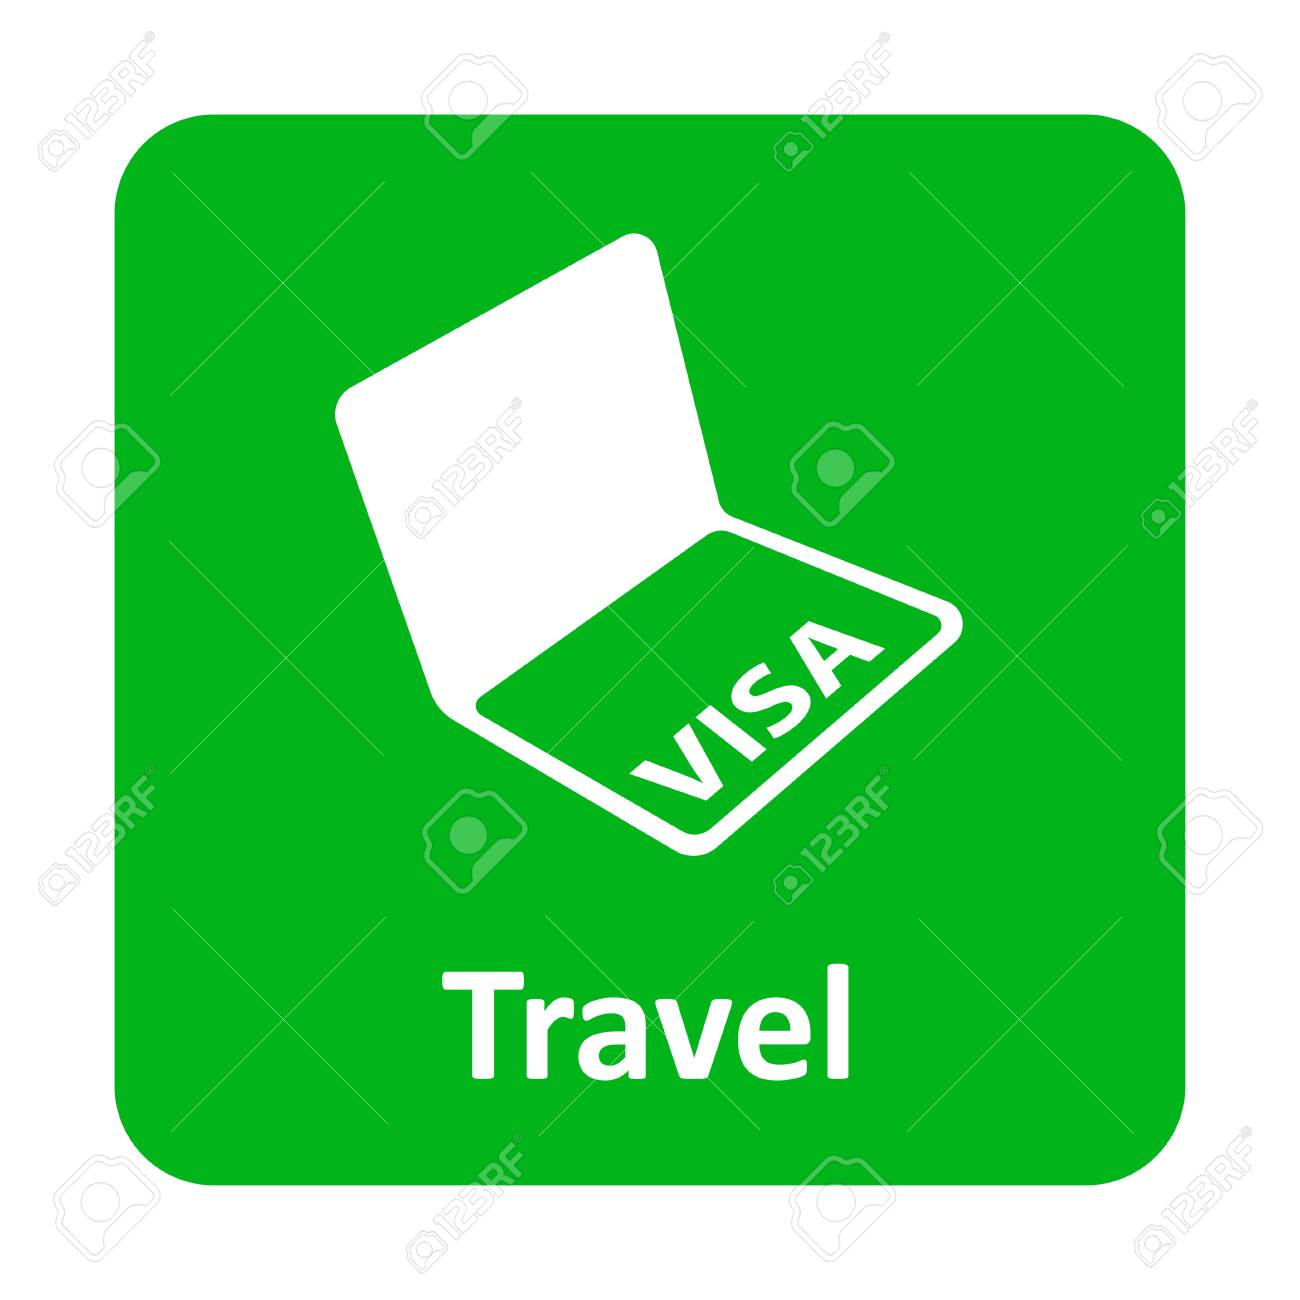 Visa in passport vector icon for web and print royalty free cliparts visa in passport vector icon for web and print stock vector 62055664 biocorpaavc Choice Image